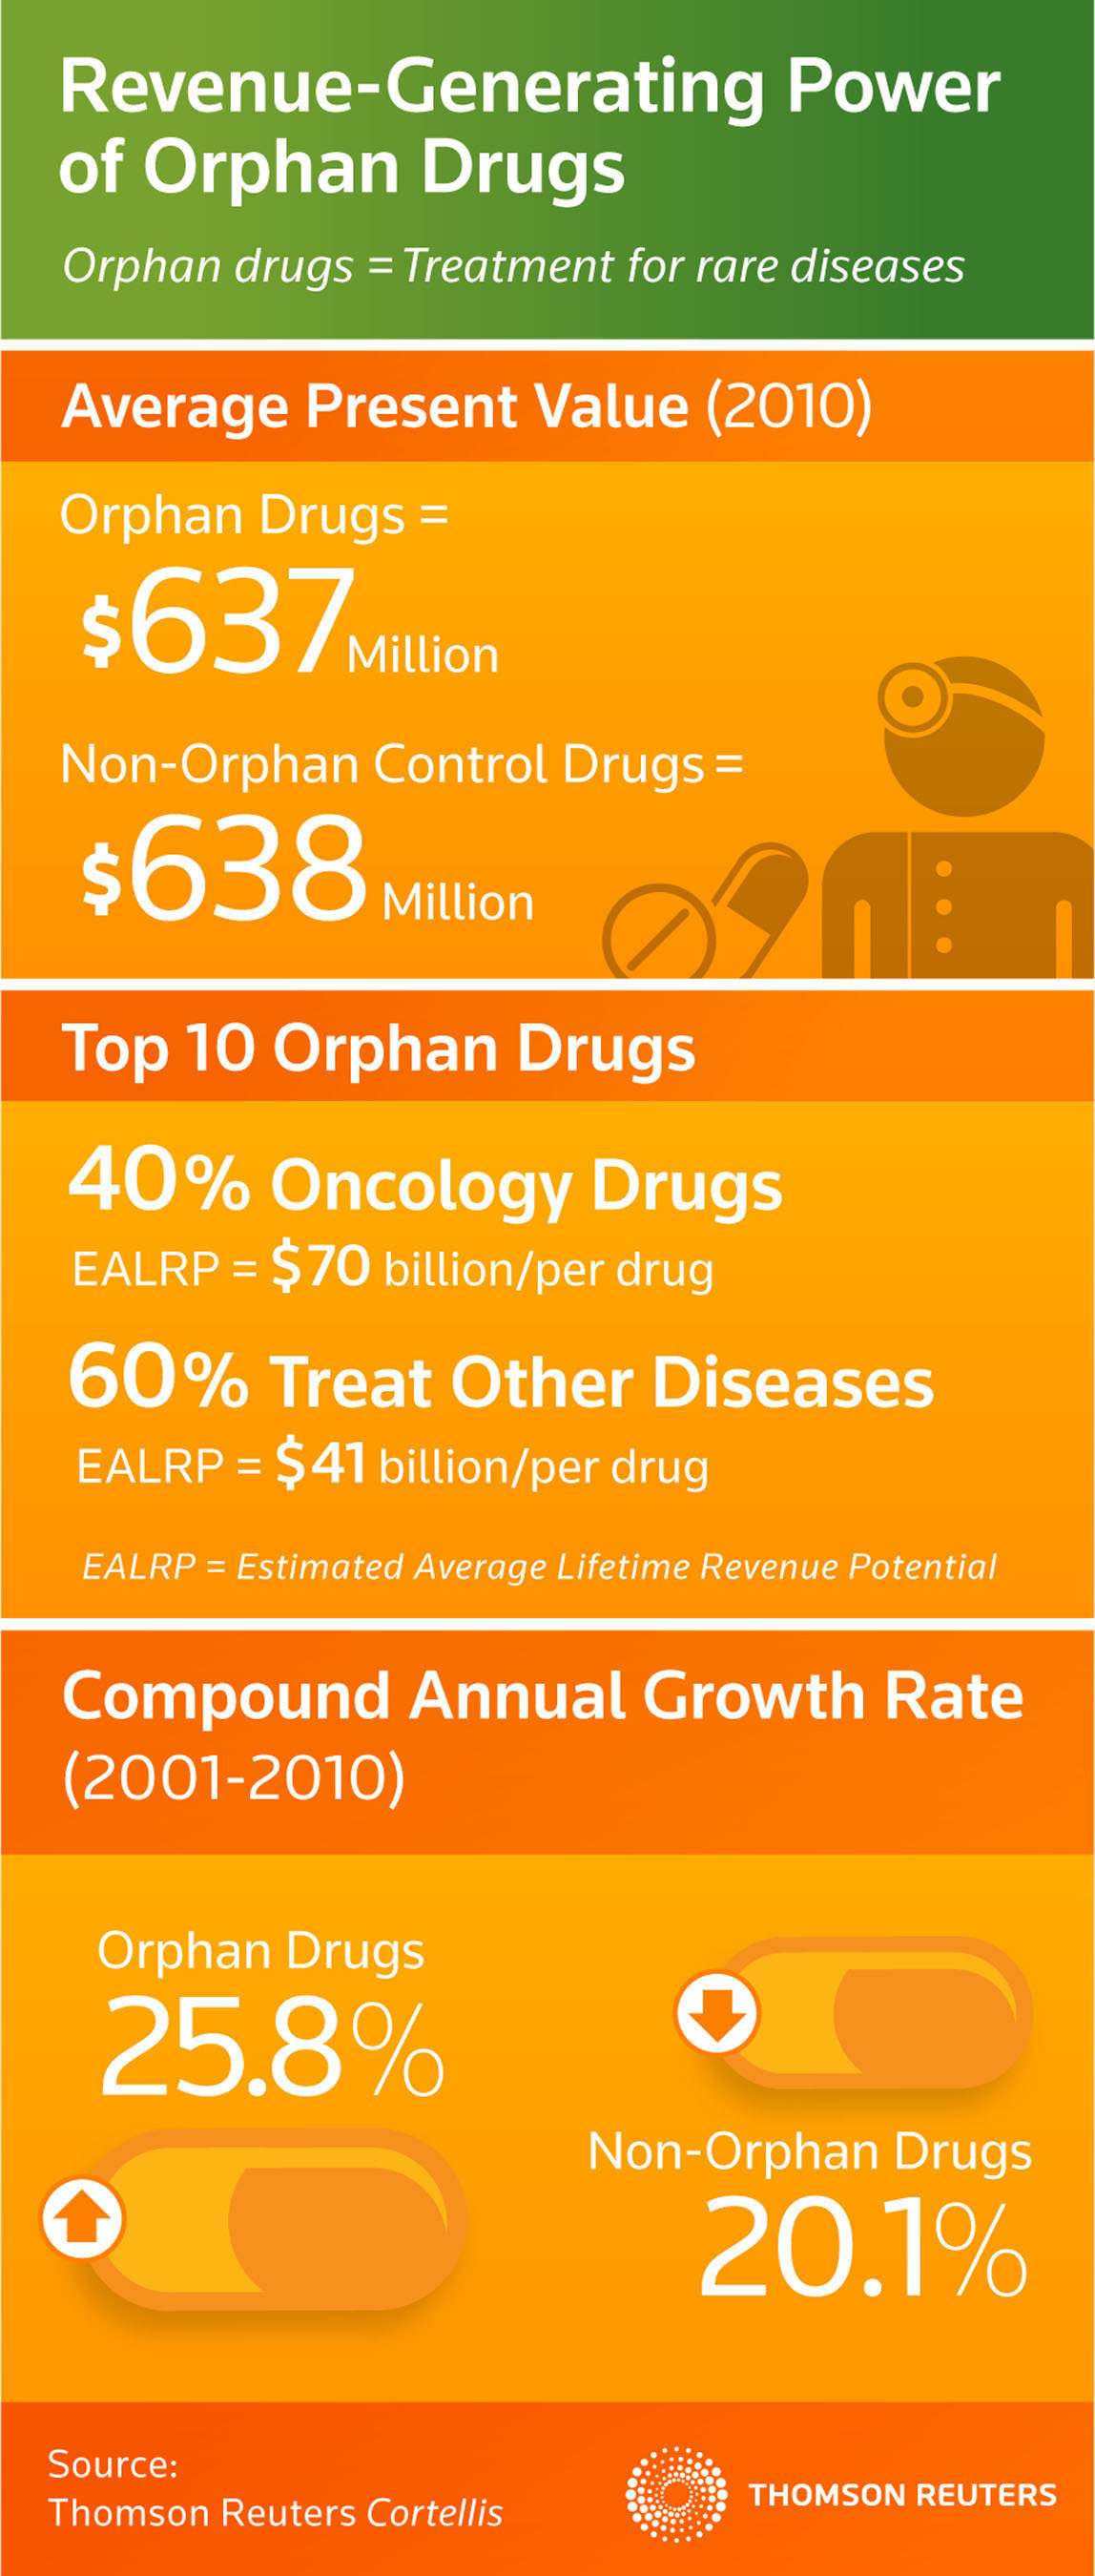 Thomson Reuters Study Confirms Economic Viability of Orphan Drugs Positioned for Unmet Medical